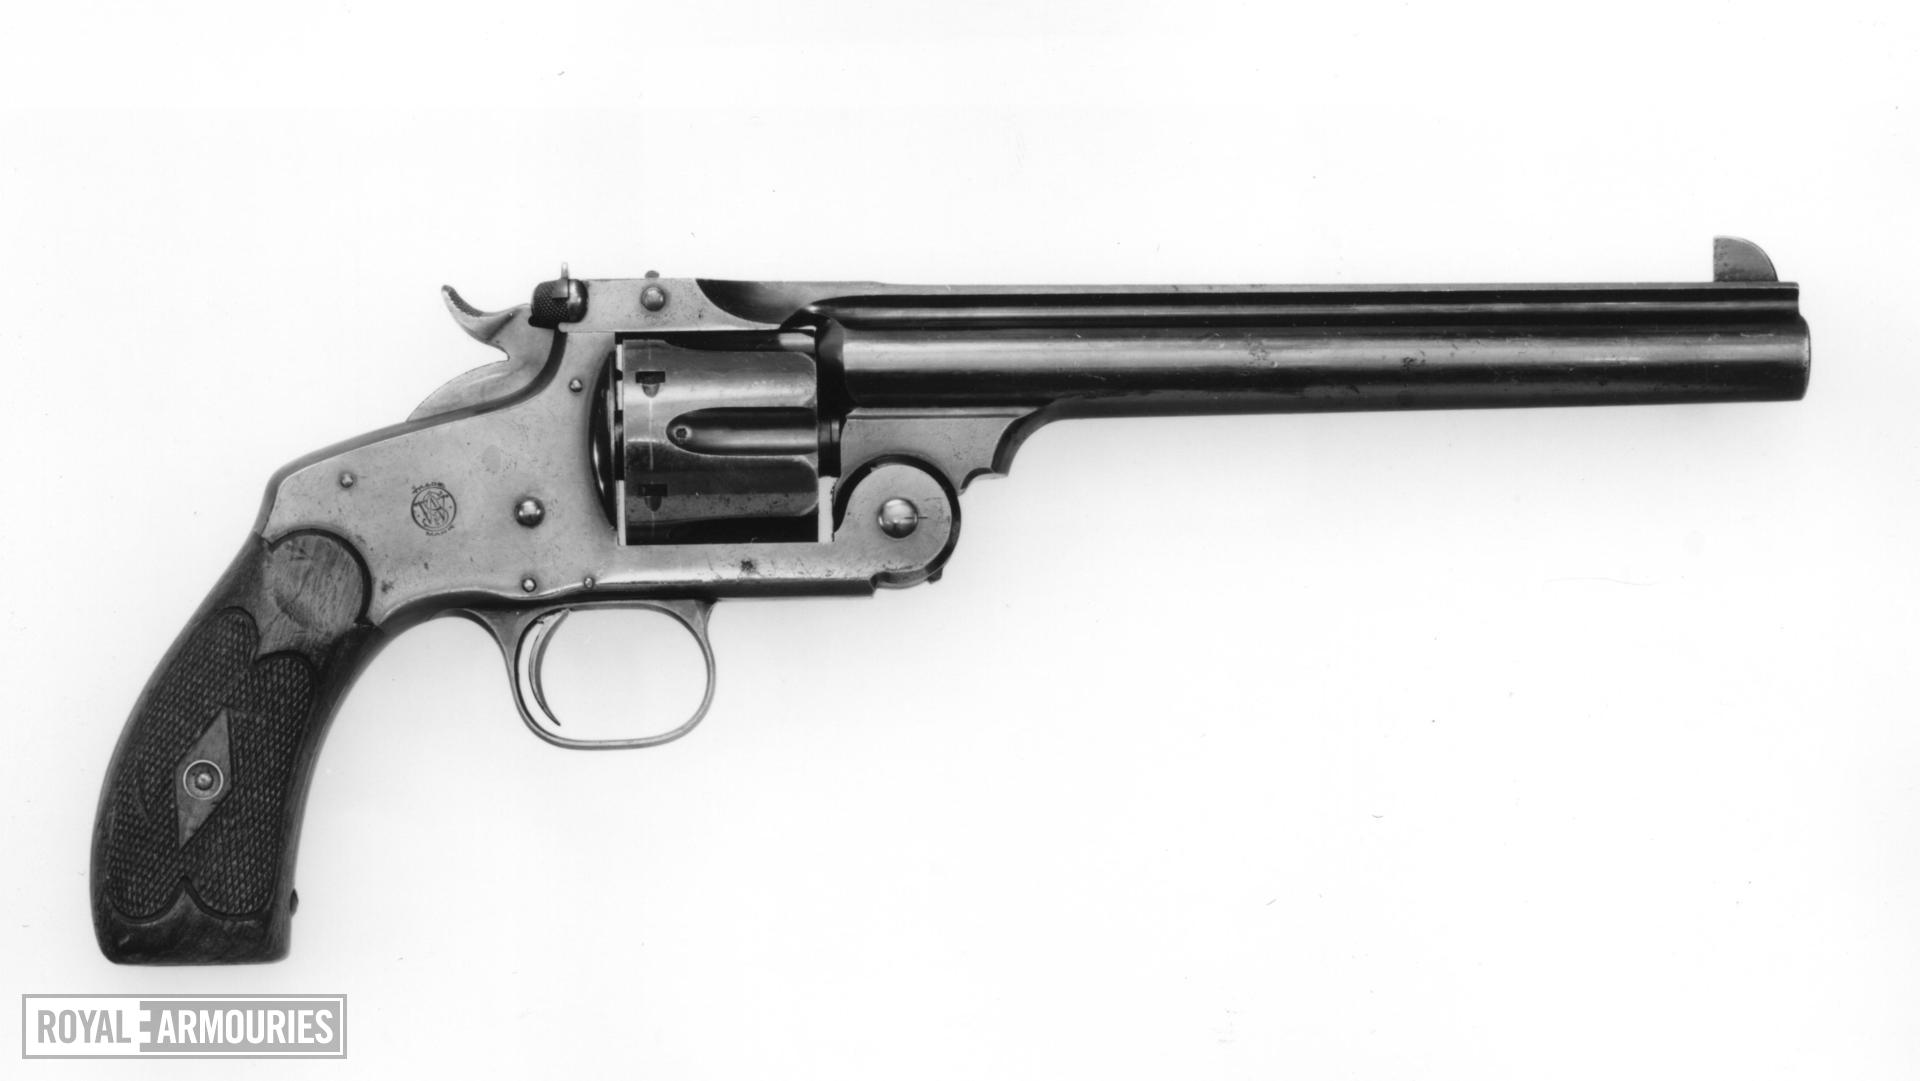 Centrefire six-shot target revolver - Smith & Wesson New Model Army No.3, Target Model